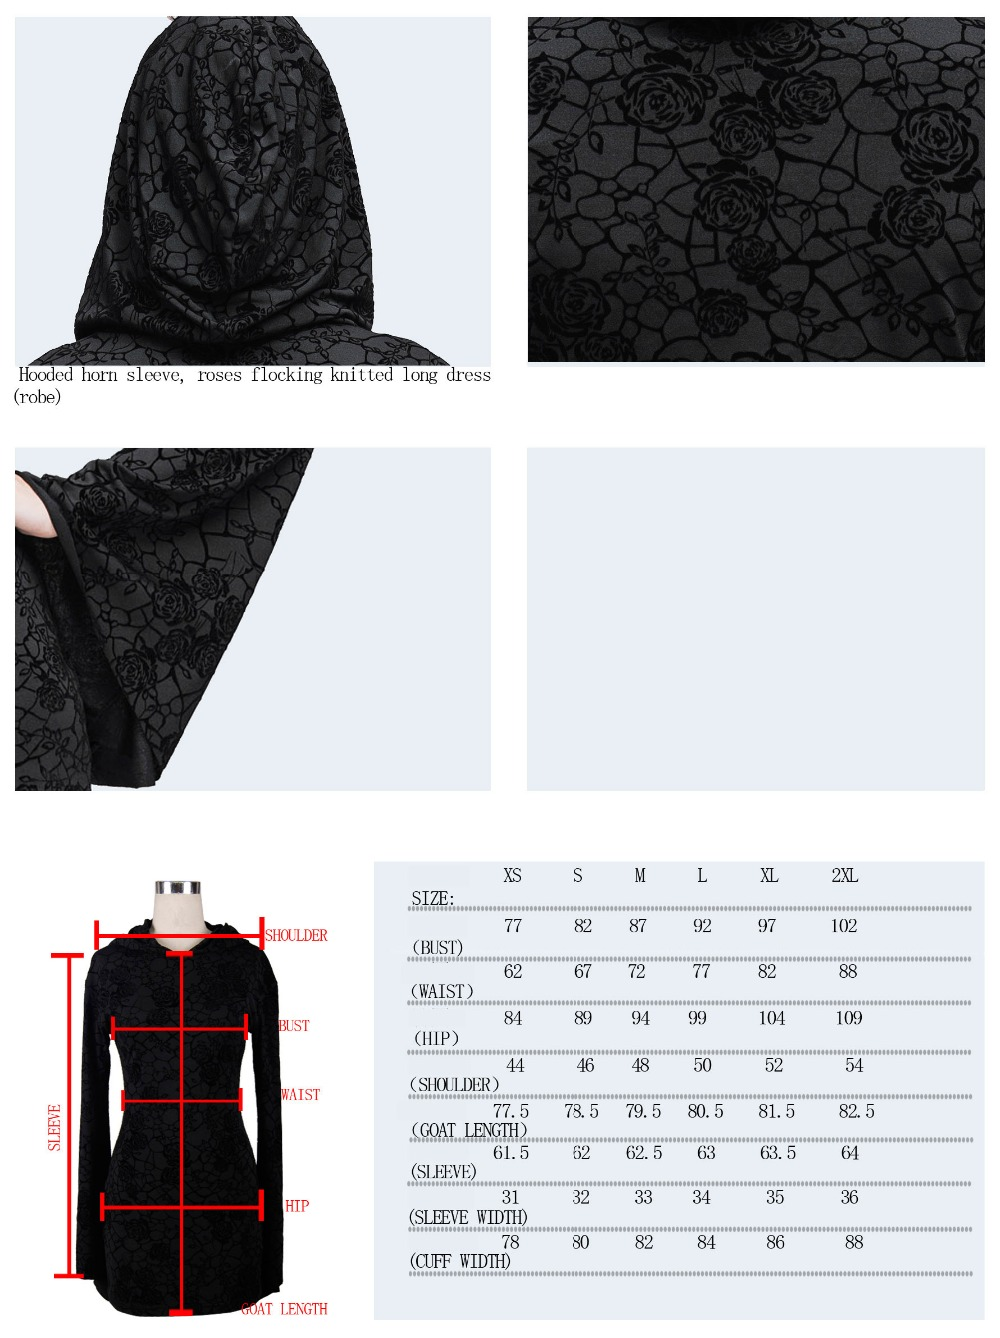 Steampunk Gothic Ukraine Black Dresses For Women Roses Print Flocking Knitted Dress With Hooded Long Sleeve Women Clothing 1